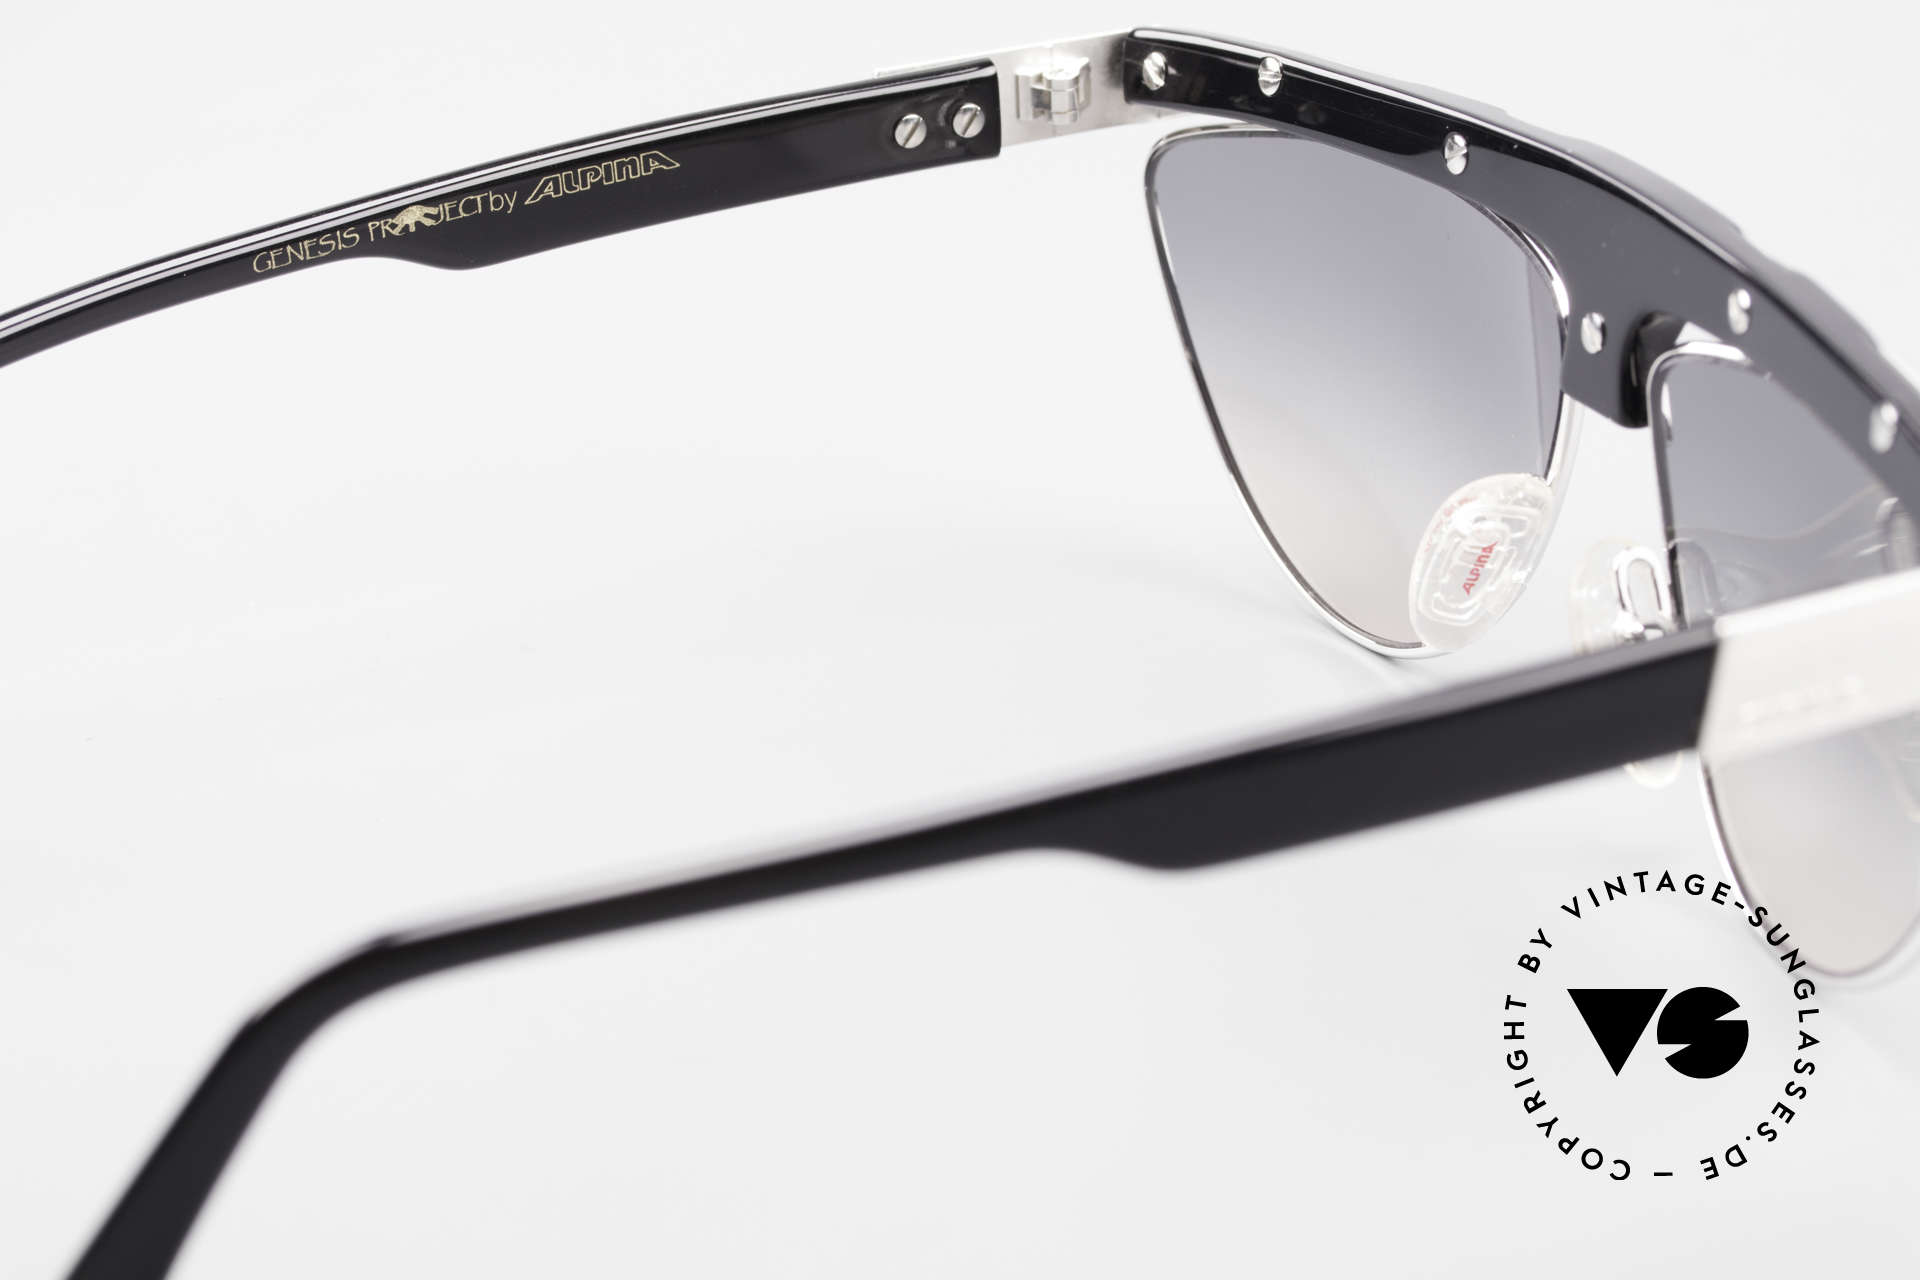 Alpina G85 Genesis Project 80's Shades, NO RETRO fashion; but a rare old ORIGINAL from '85, Made for Men and Women